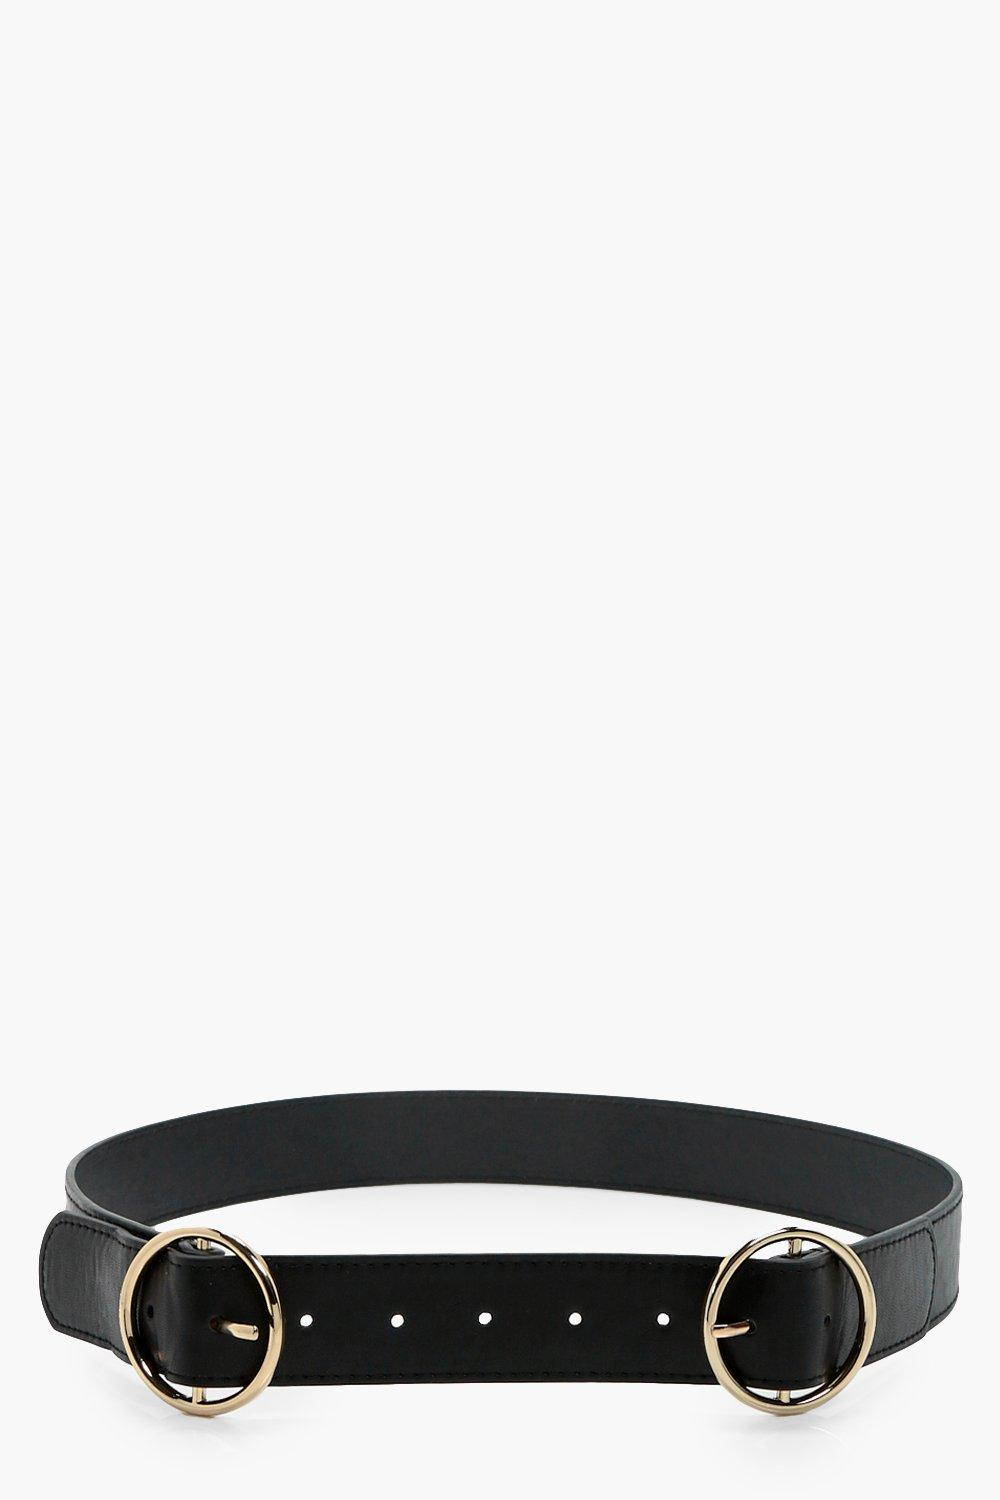 Double Ring Buckle Boyfriend Belt - black - Rosie